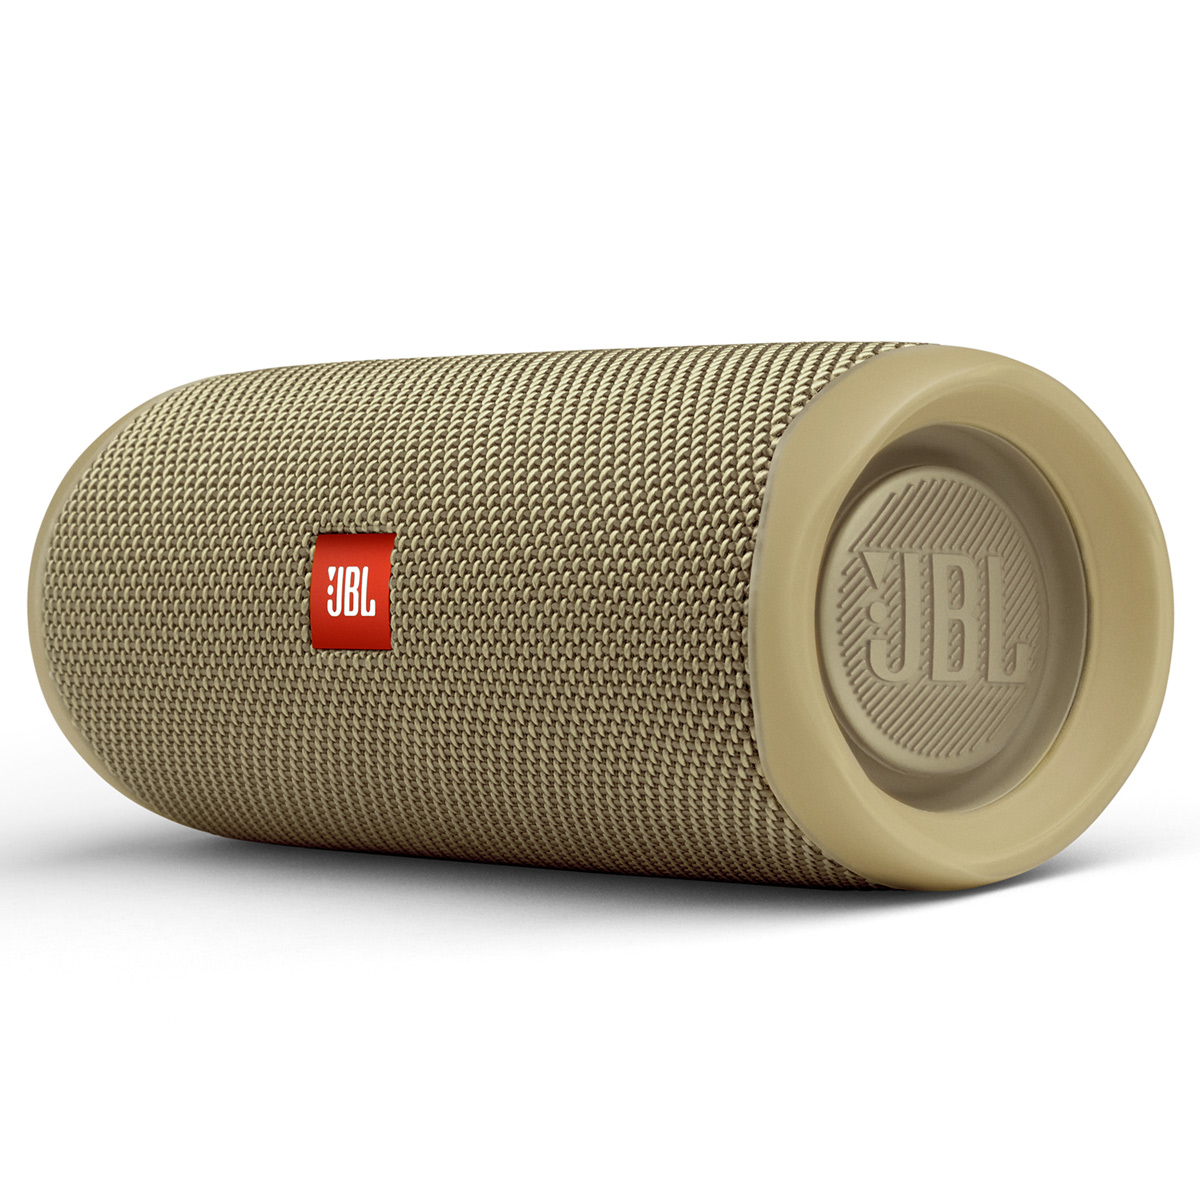 JBL-Flip-5-Portable-Waterproof-Bluetooth-Speaker thumbnail 35